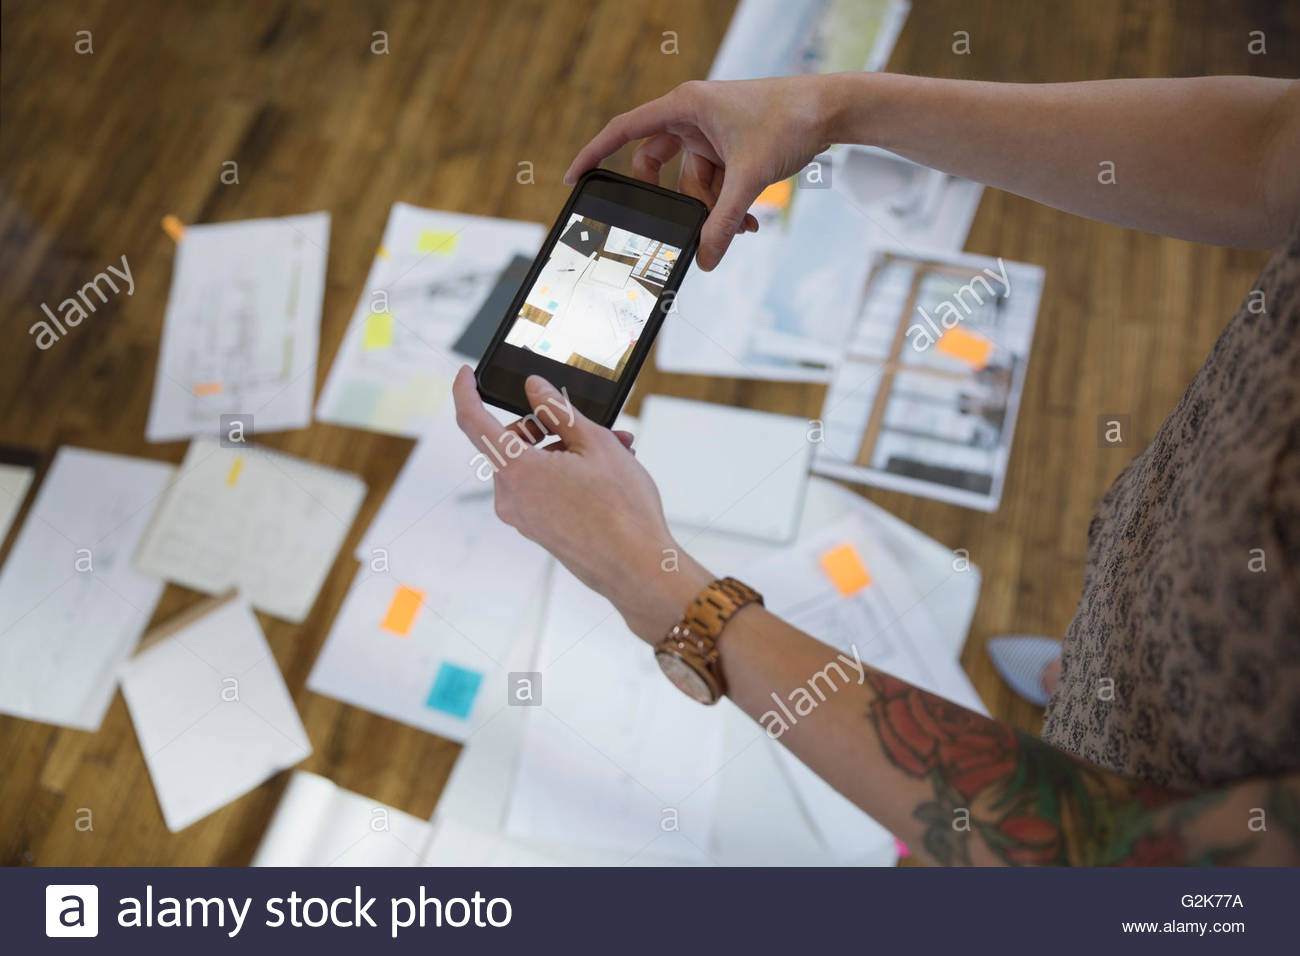 Designer photographing proofs and paperwork with camera phone - Stock Image